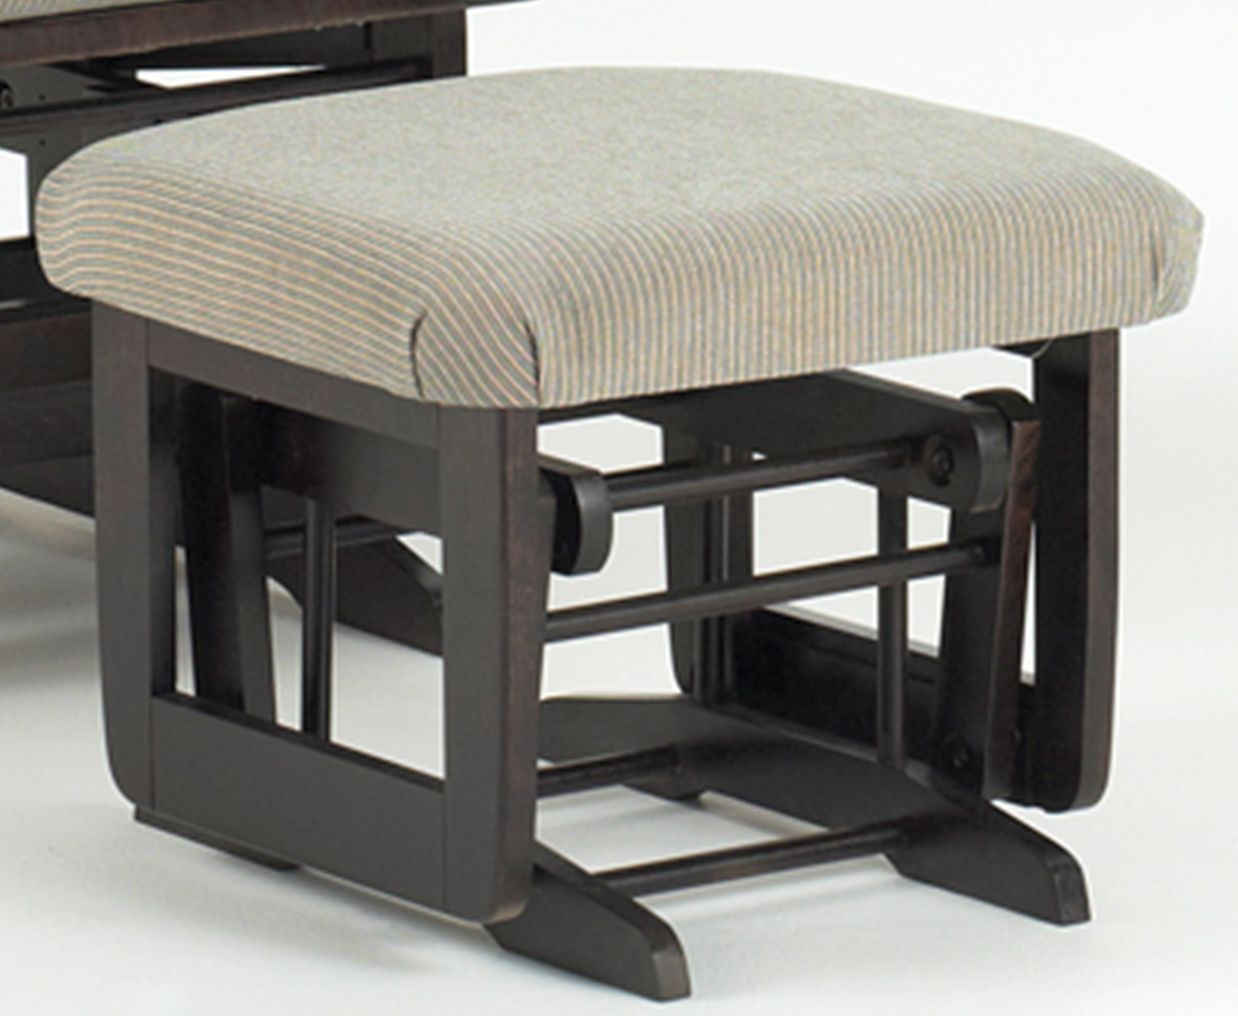 Dutailier Great Value 614 Modern Ottoman